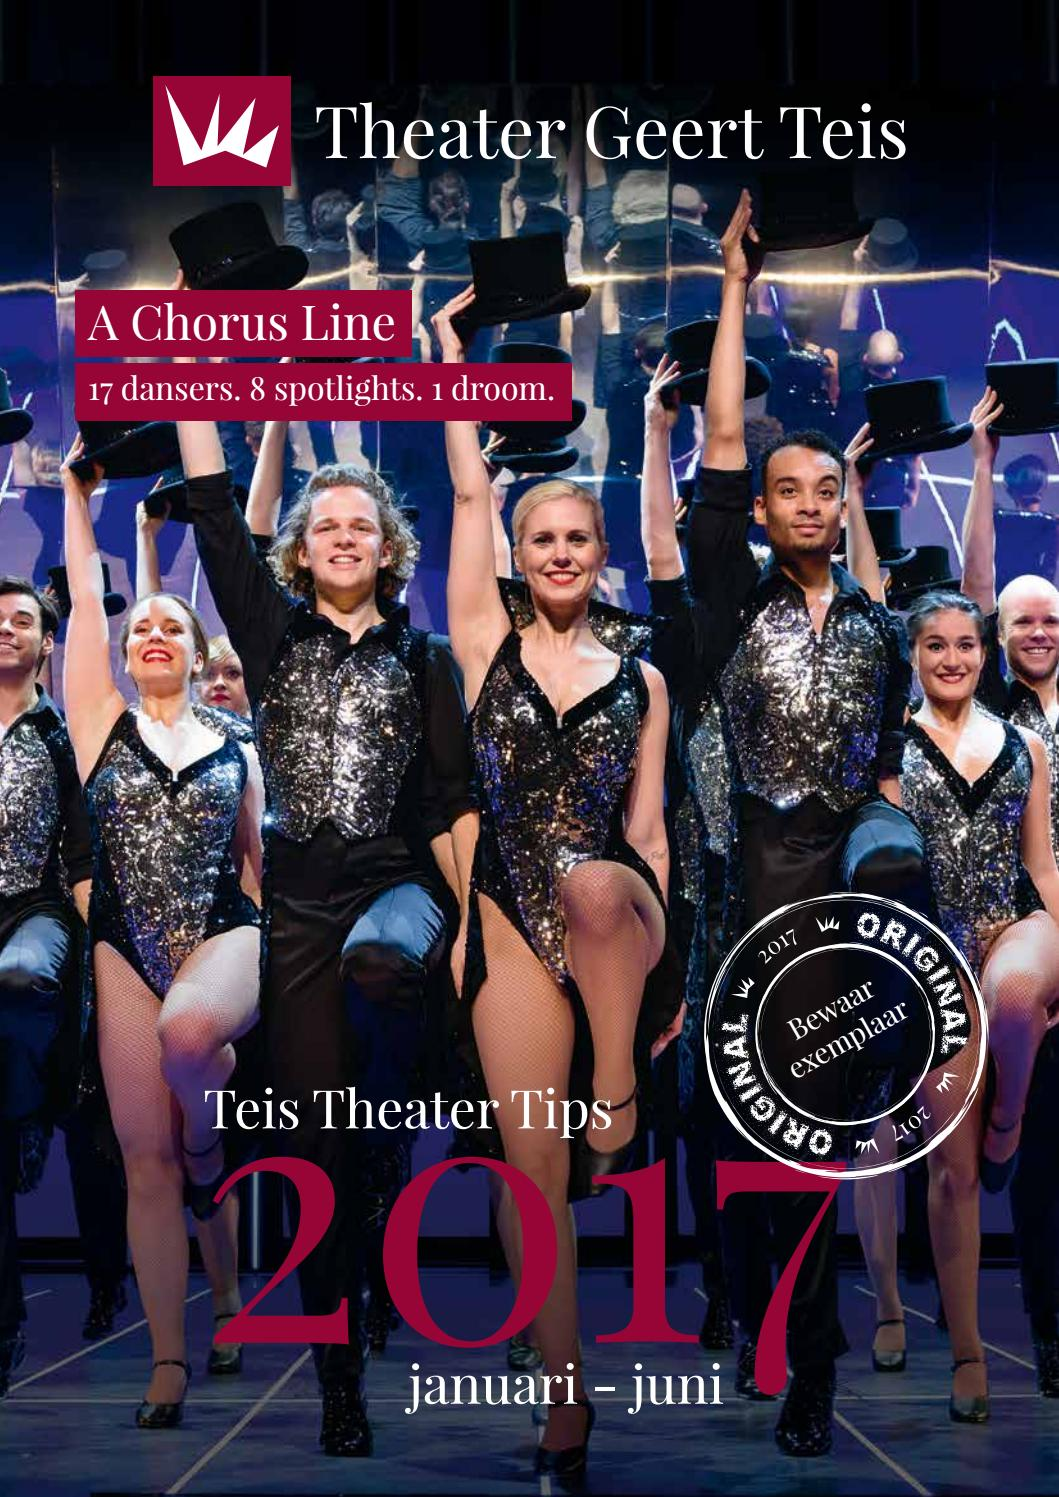 Teis theater tips   tweede seizoenshelft theater geert teis by ...